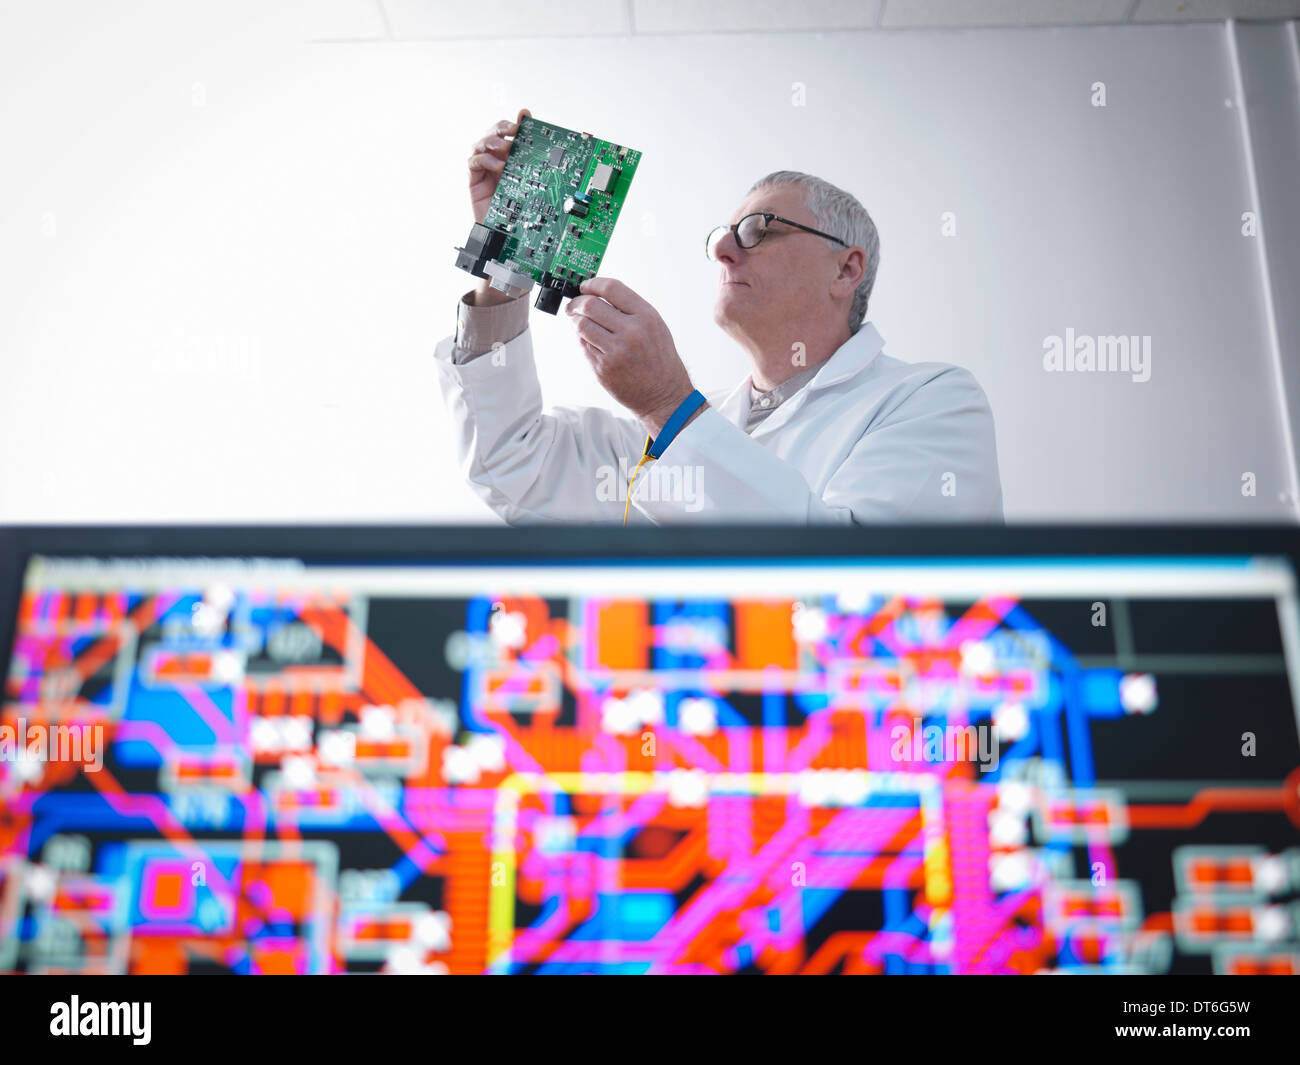 Engineer designing electronic circuitry for automotive use - Stock Image